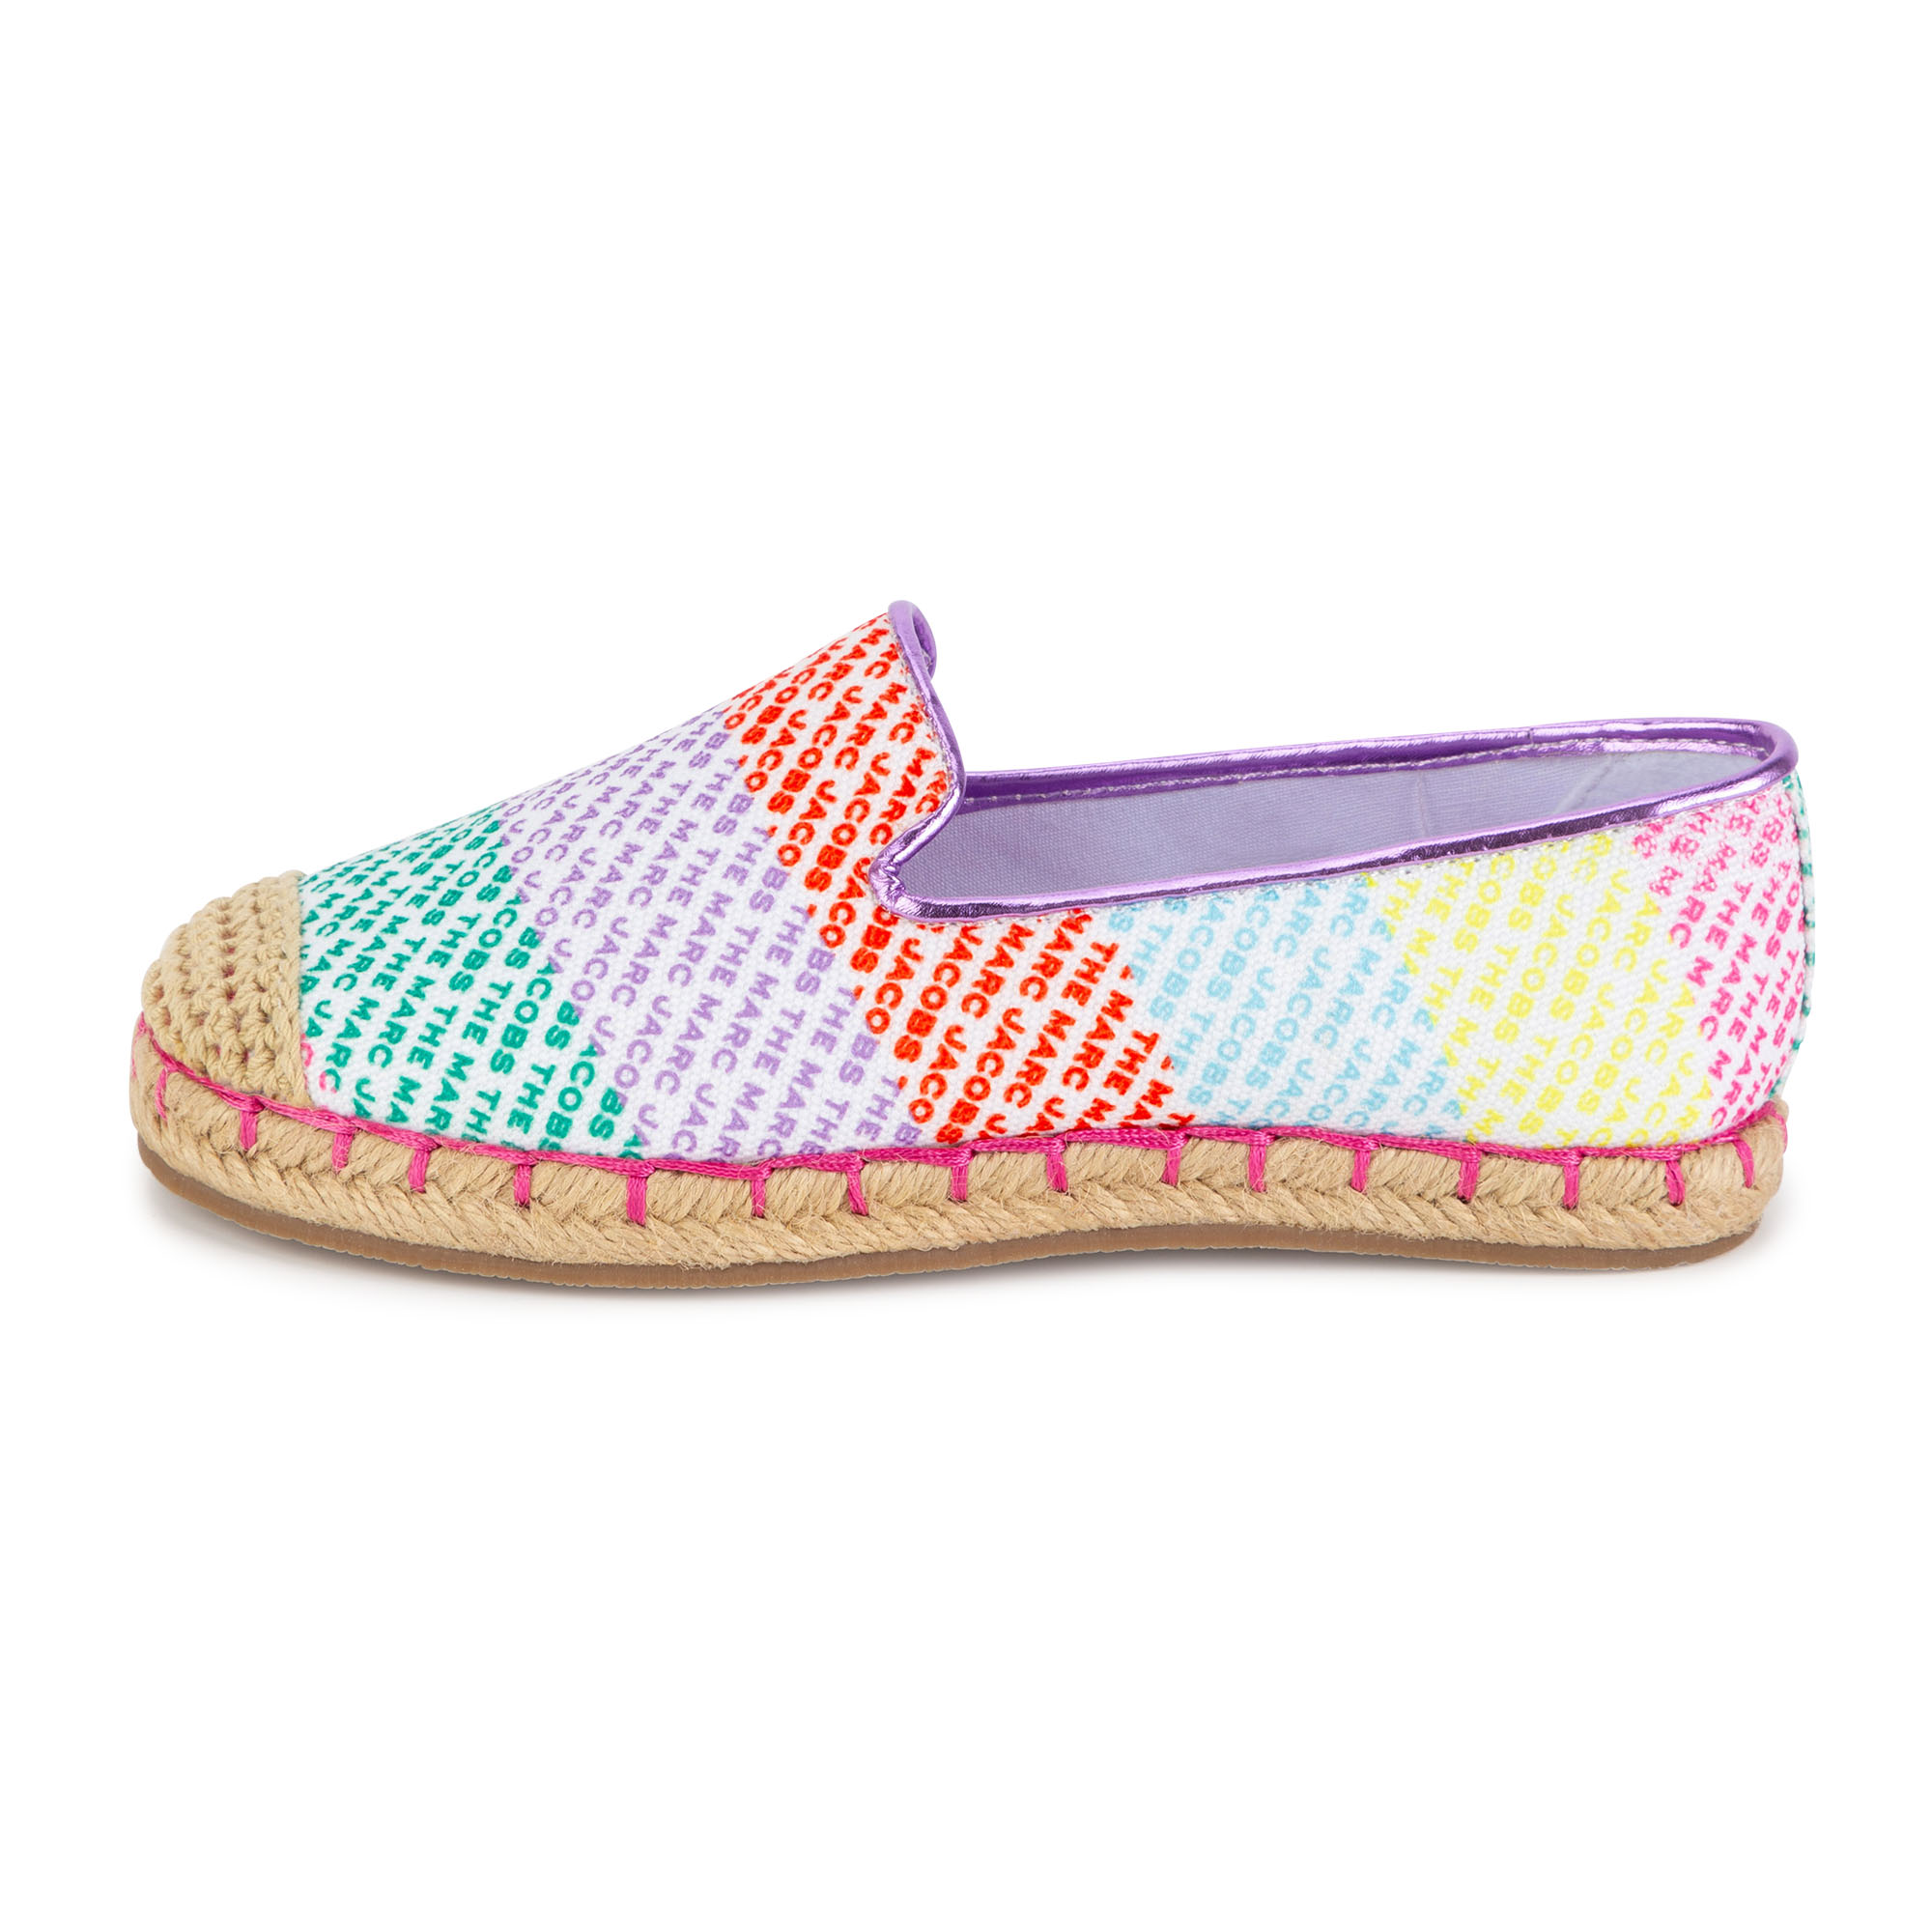 Multicolored espadrilles THE MARC JACOBS for GIRL